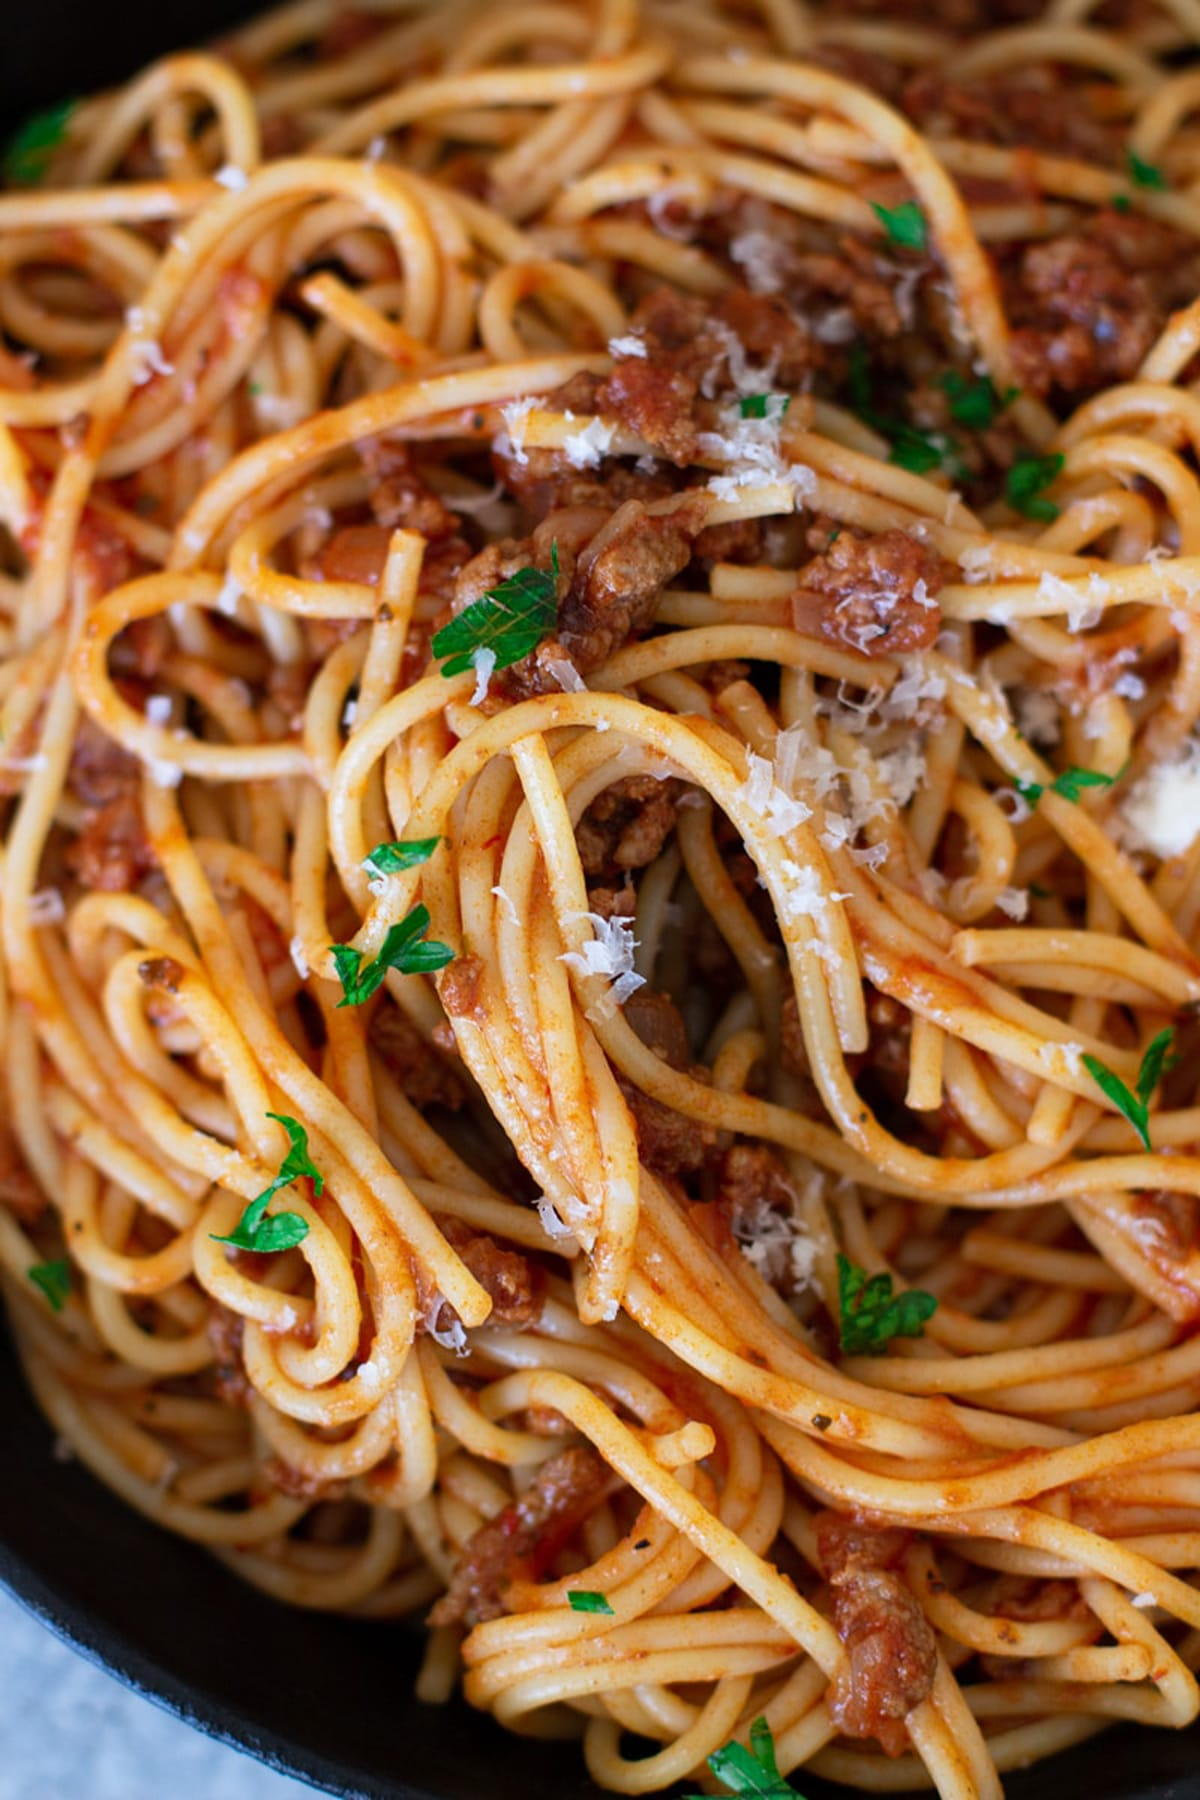 Close up of spaghetti noodles covered in a red sauce topped with parmesan cheese and parsley.